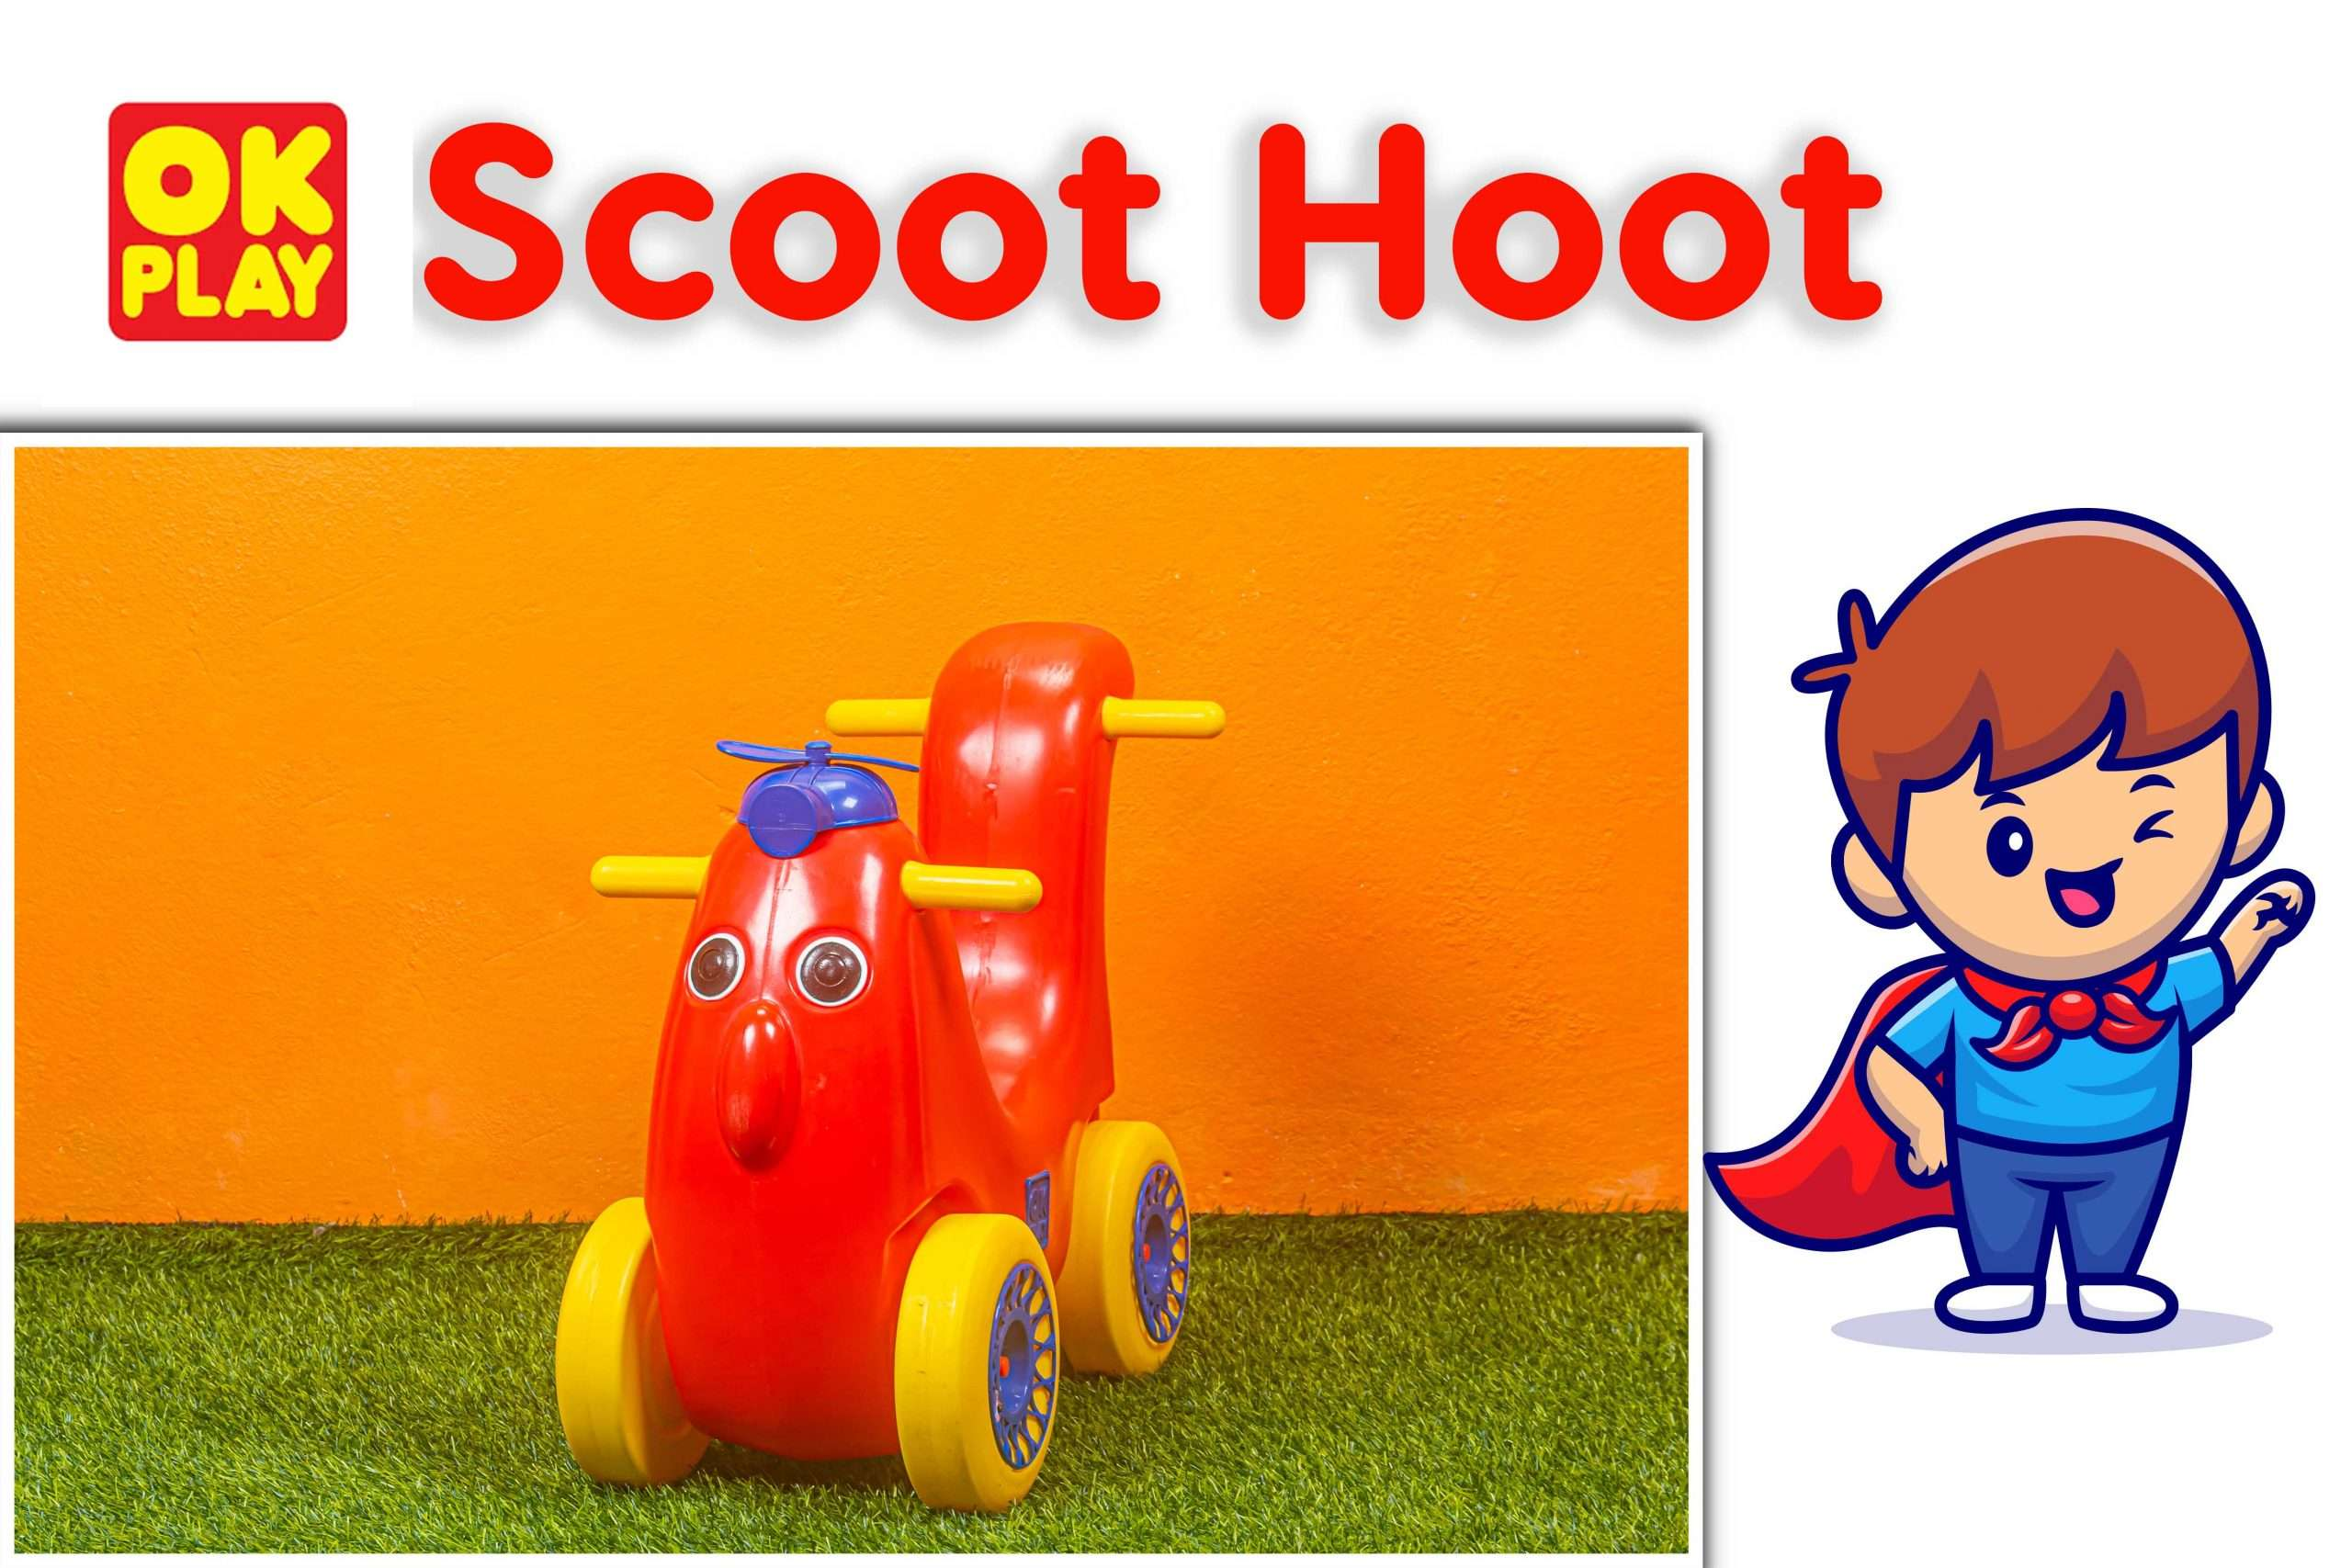 scoot hoot designs 4 scaled